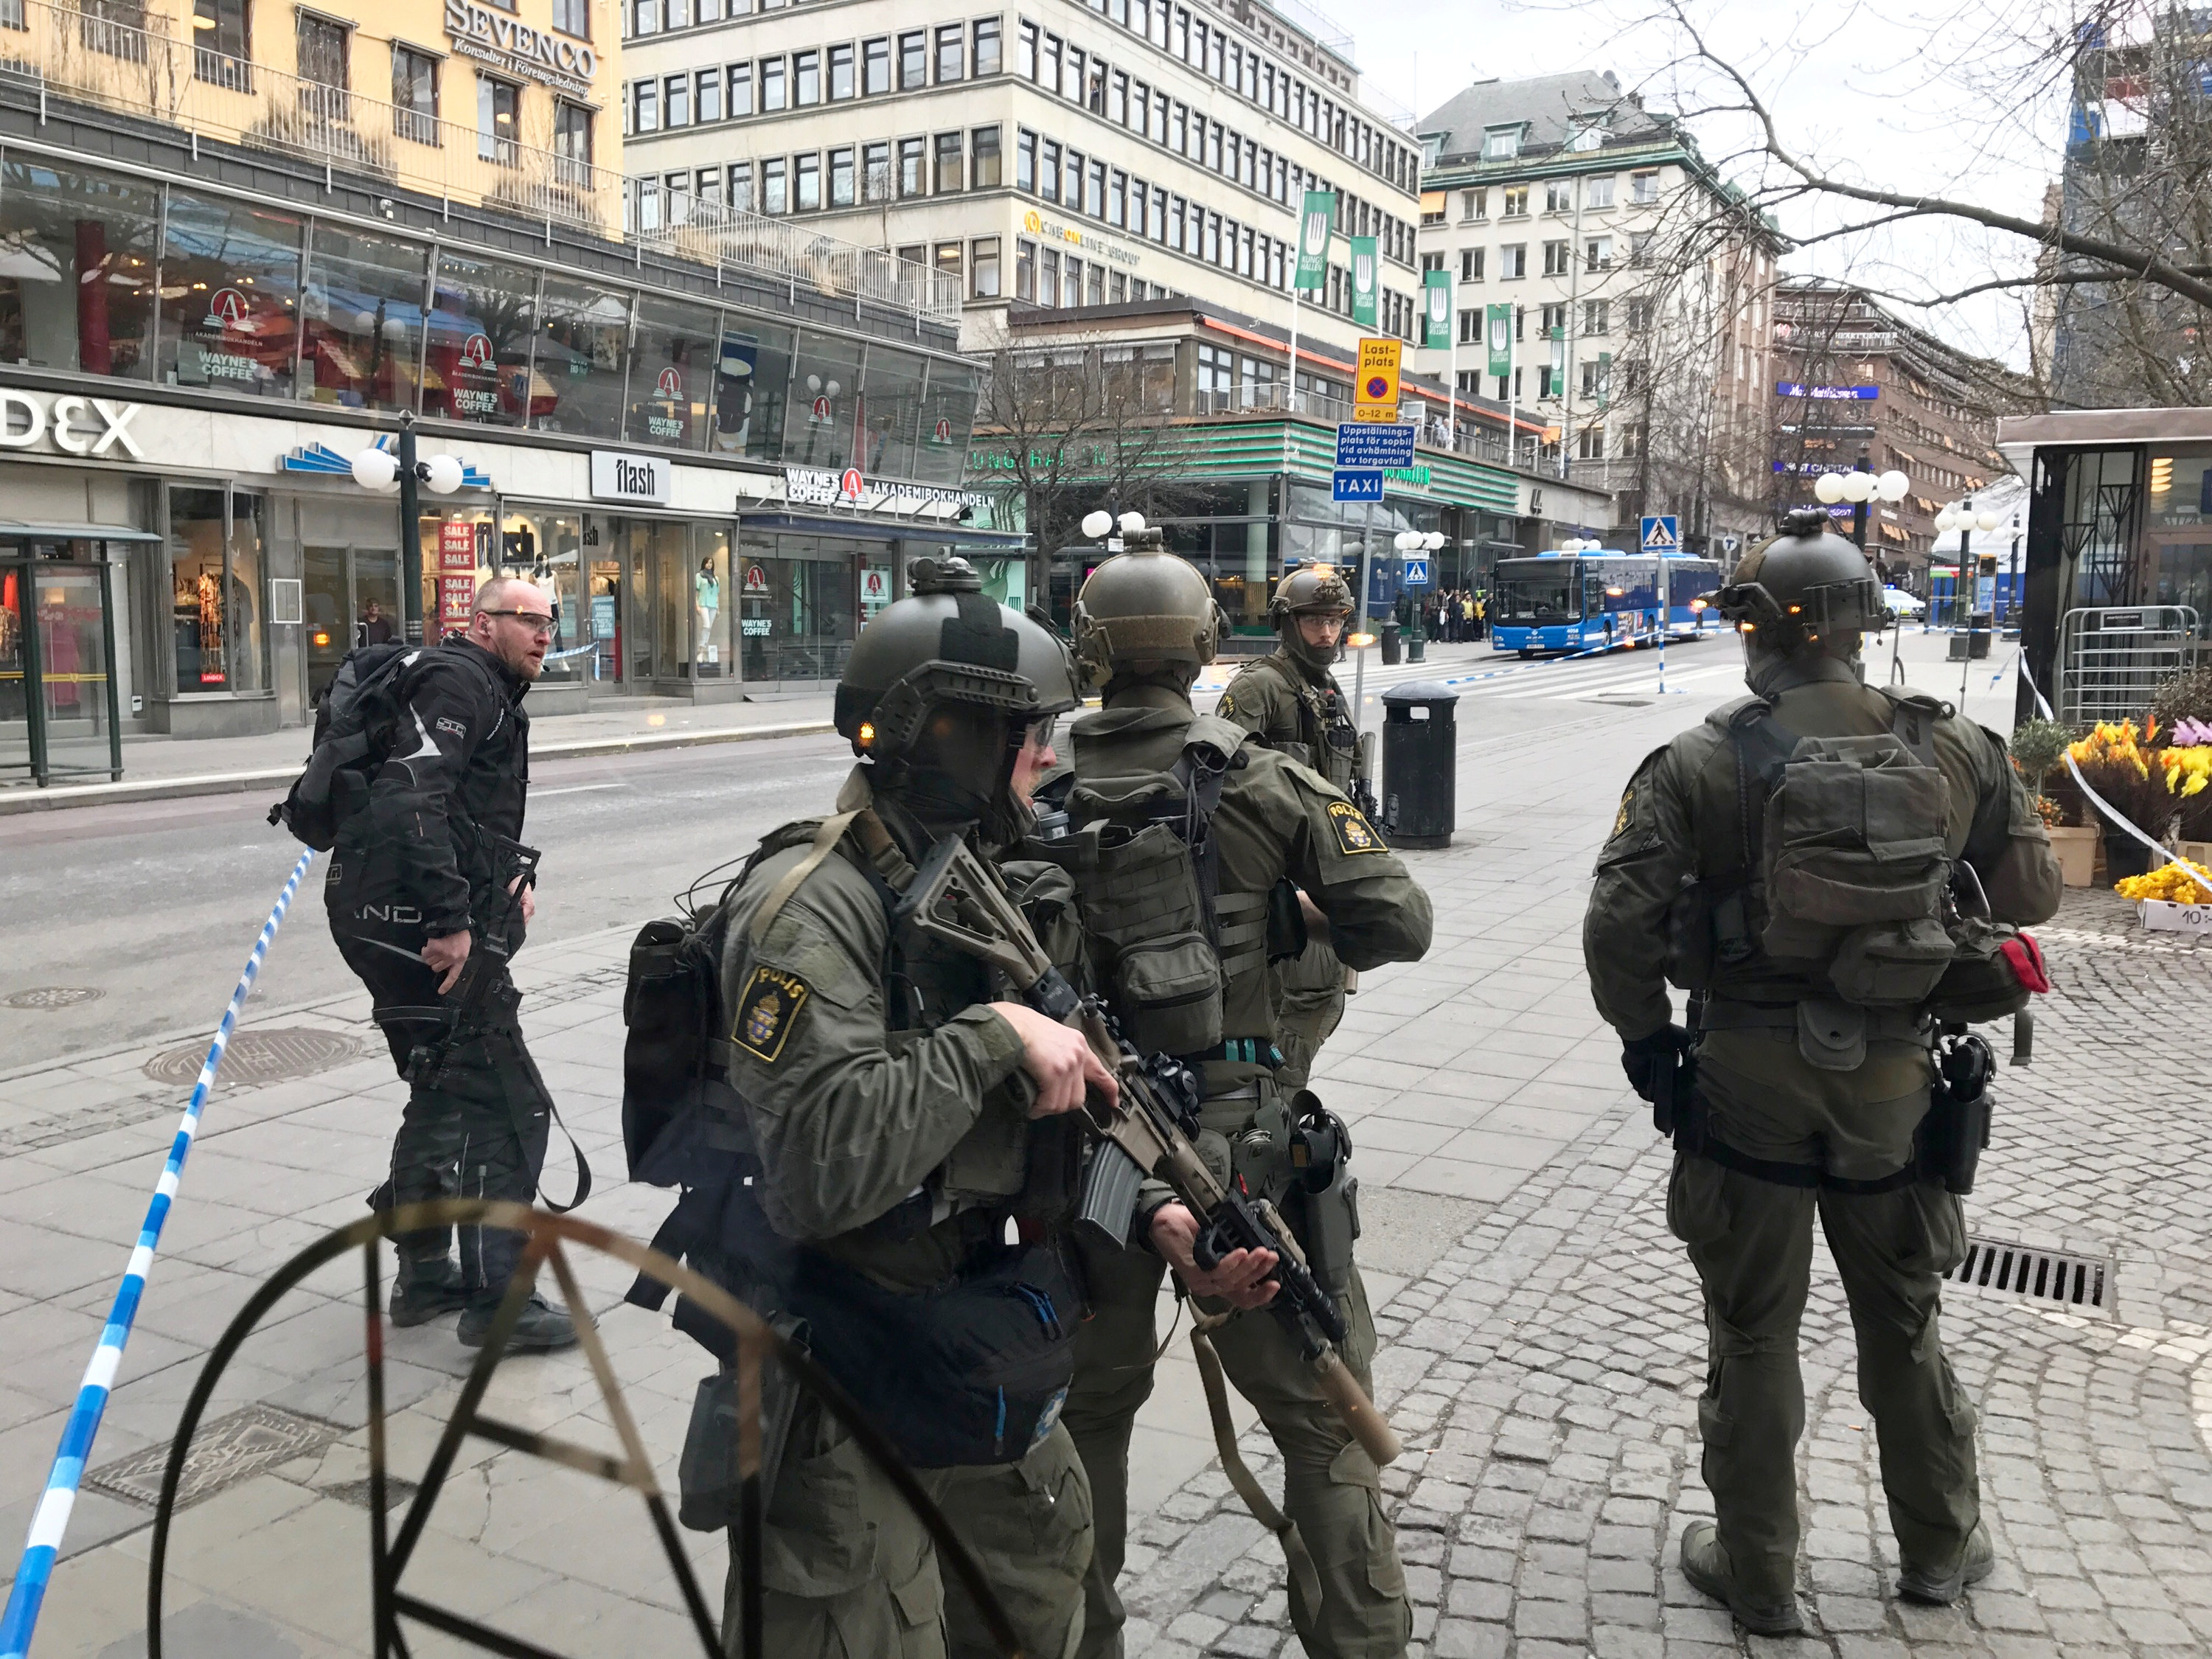 Over 1000 Terror Suspects Arrested in Europe in 2016